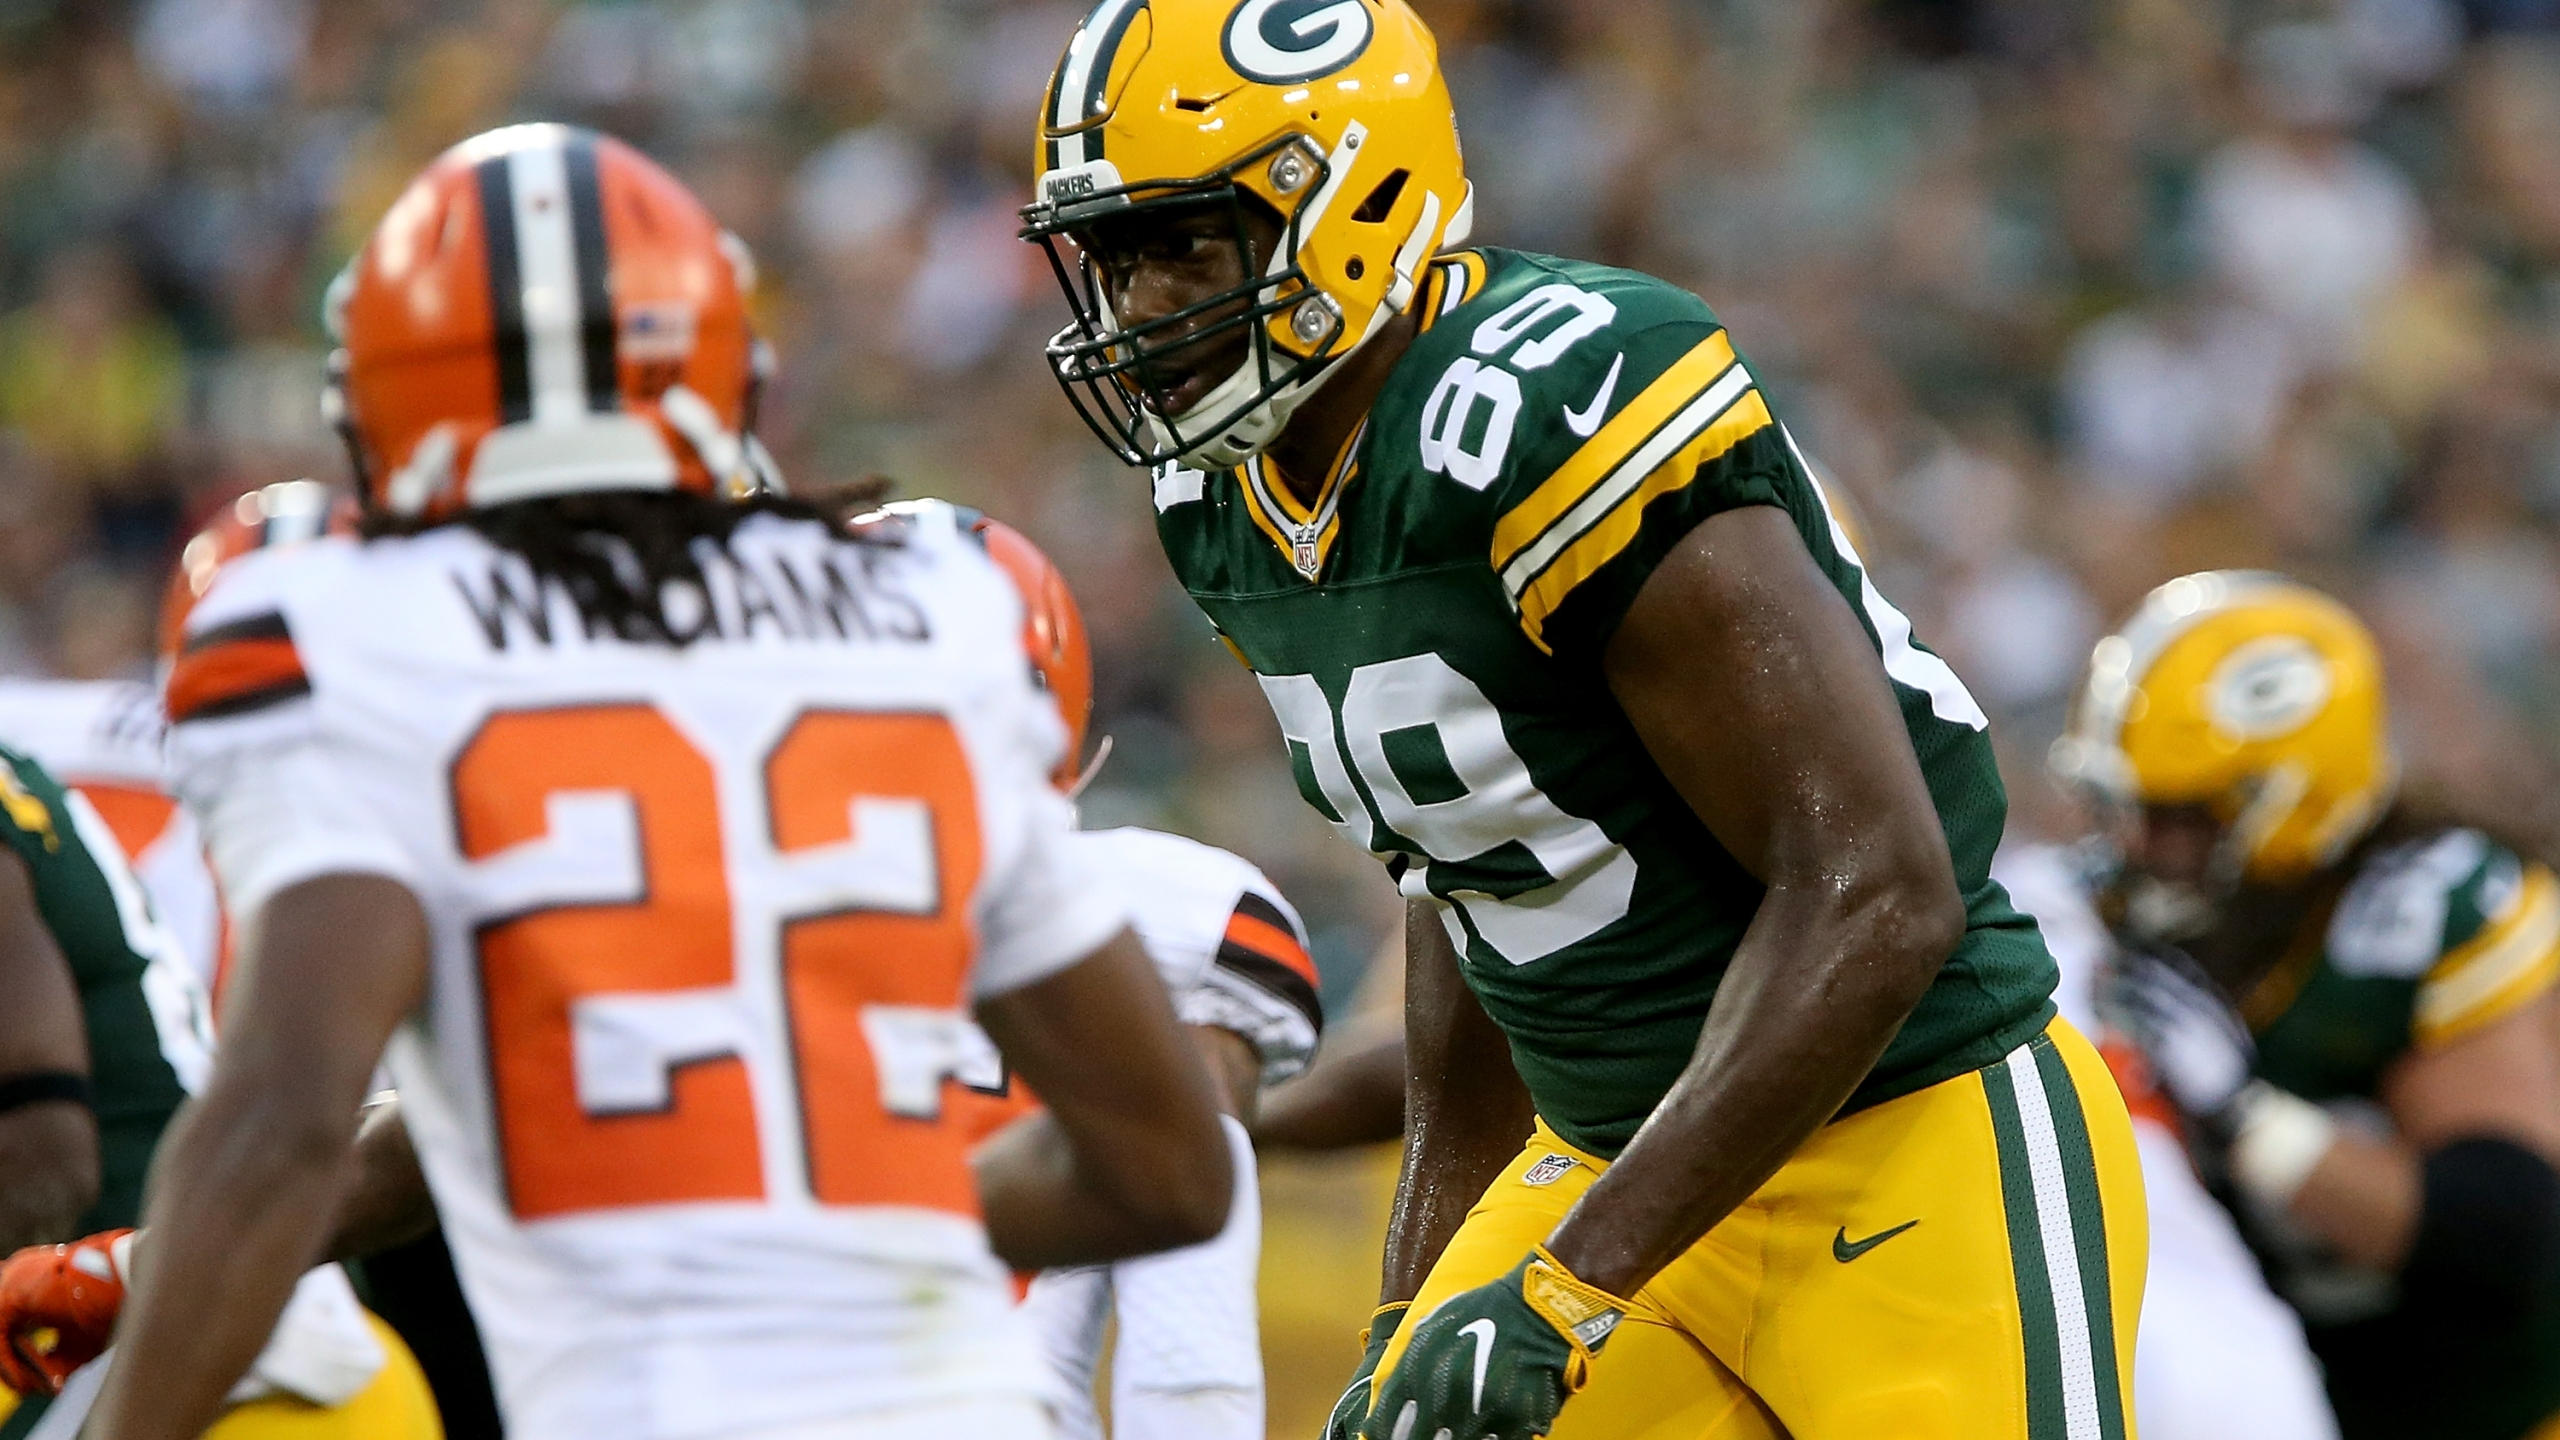 Packers Jared Cook